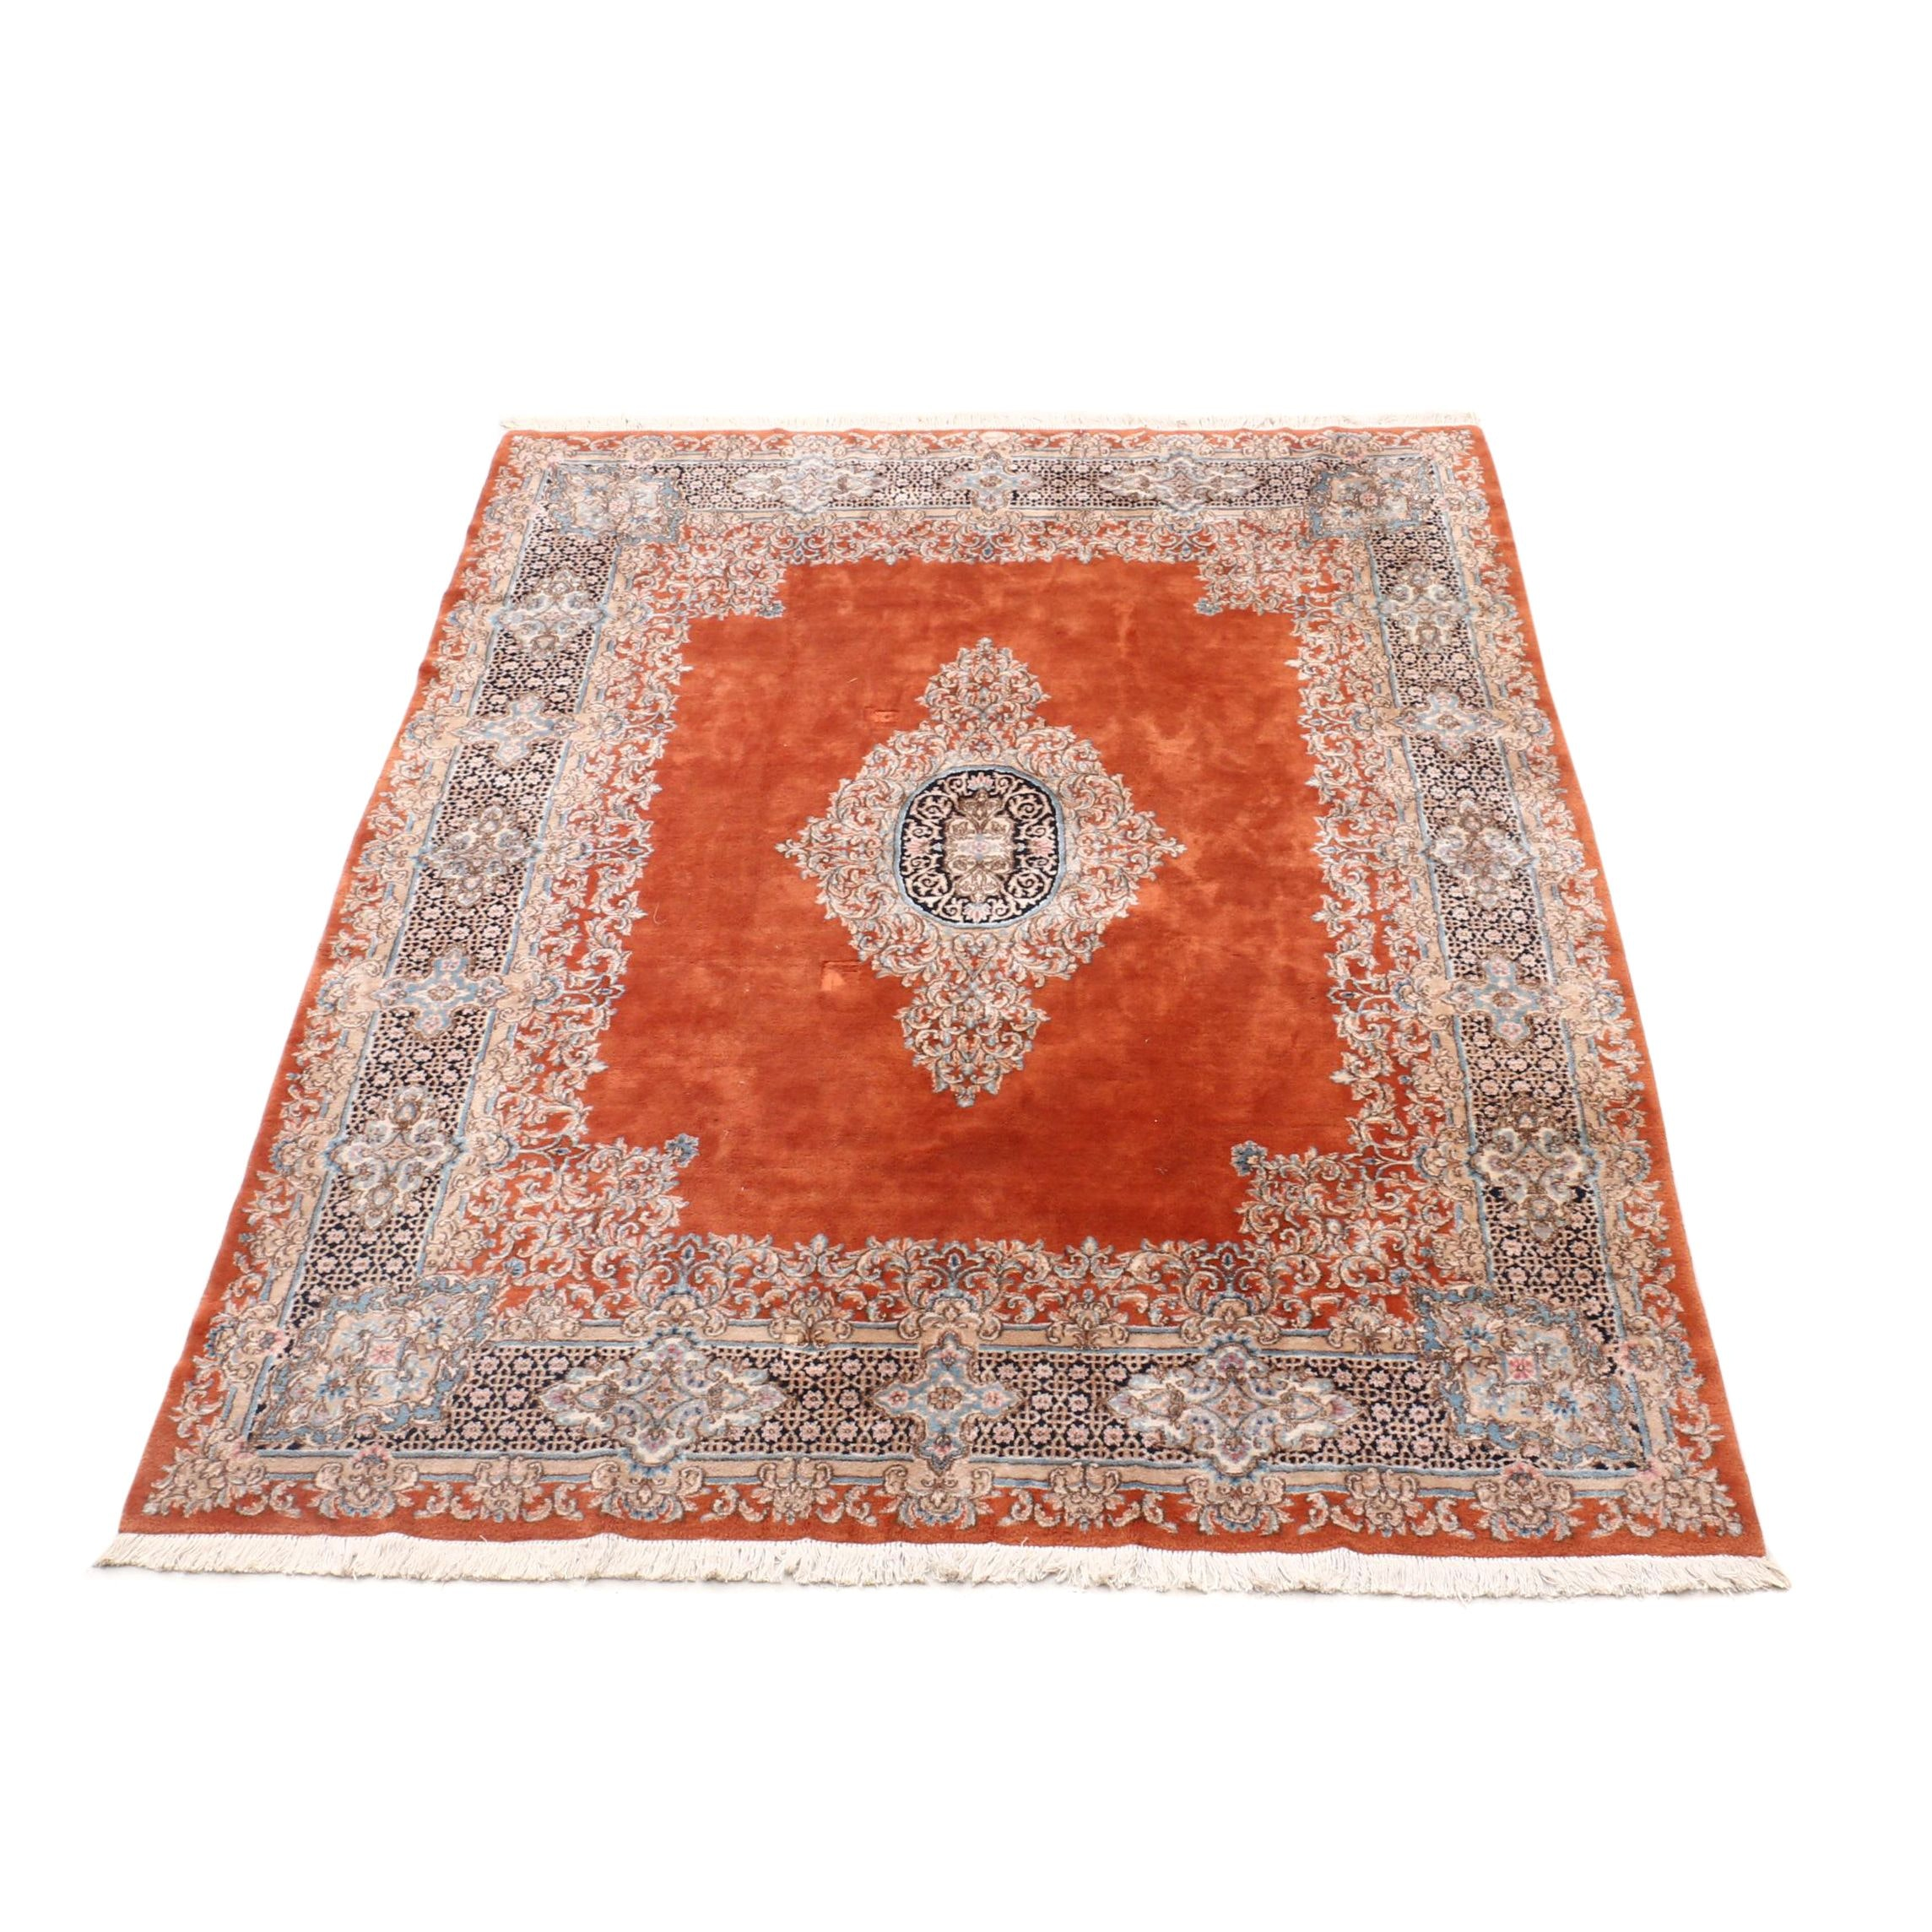 "Hand-Knotted Persian Royal Rugs ""Imperial Kerman"" Room Sized Wool Rug"